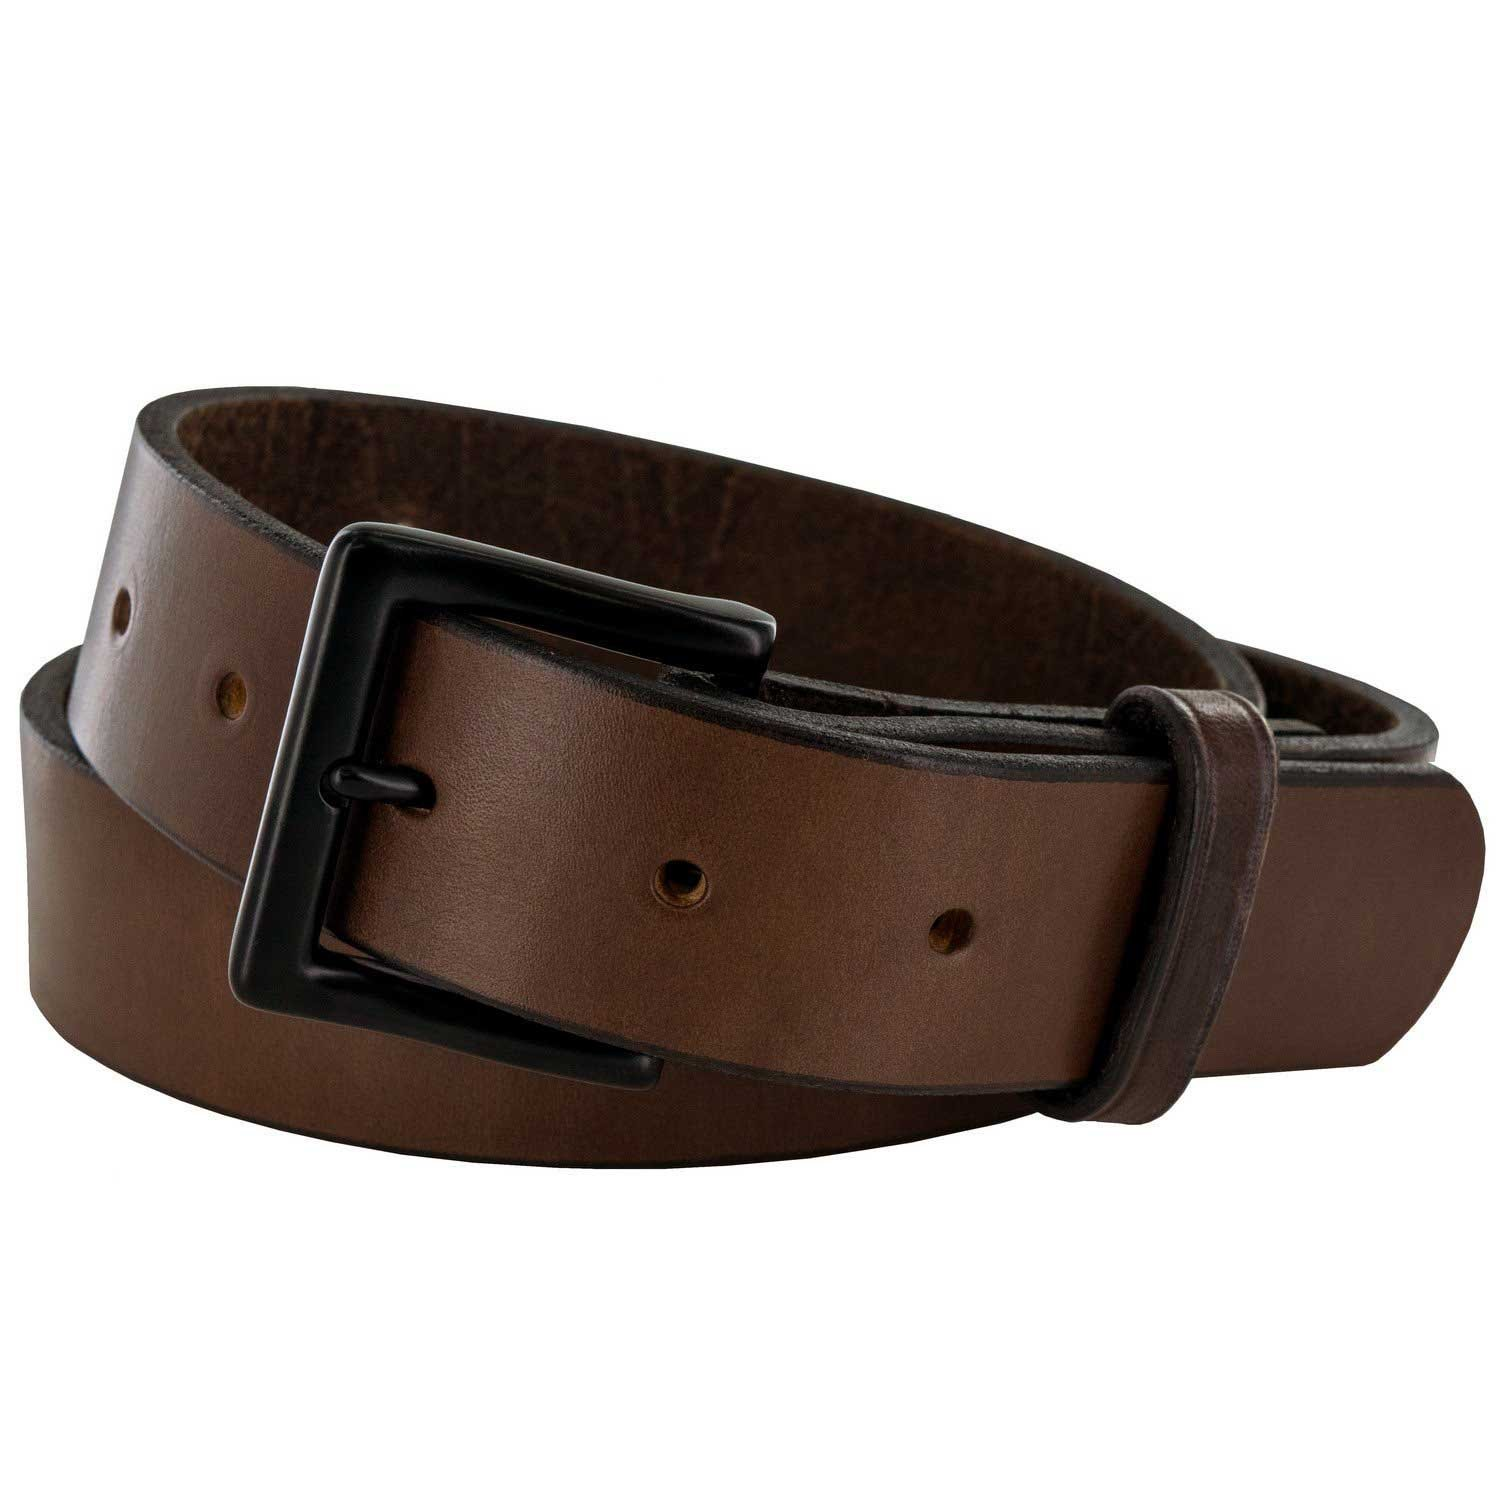 Hanks Everyday -No Break Thick Leather Belt - Mens Heavy Duty Belts- USA Made -100 Year Warranty Hanks Belts